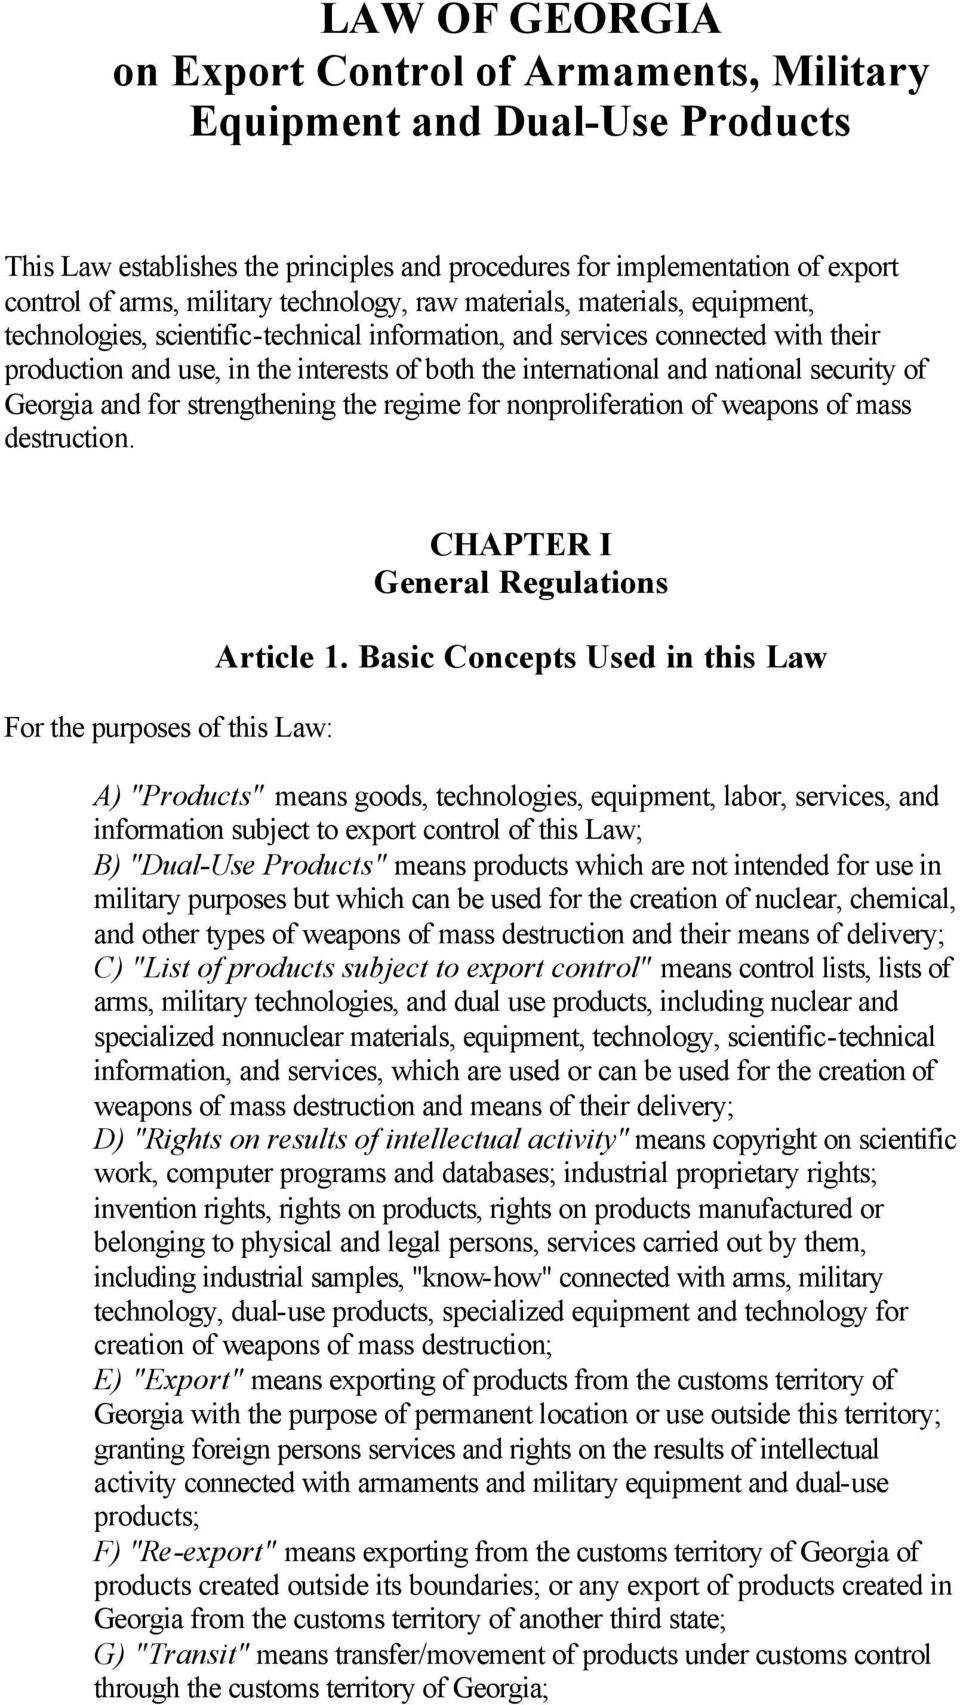 national security of Georgia and for strengthening the regime for nonproliferation of weapons of mass destruction. For the purposes of this Law: CHAPTER I General Regulations Article 1.